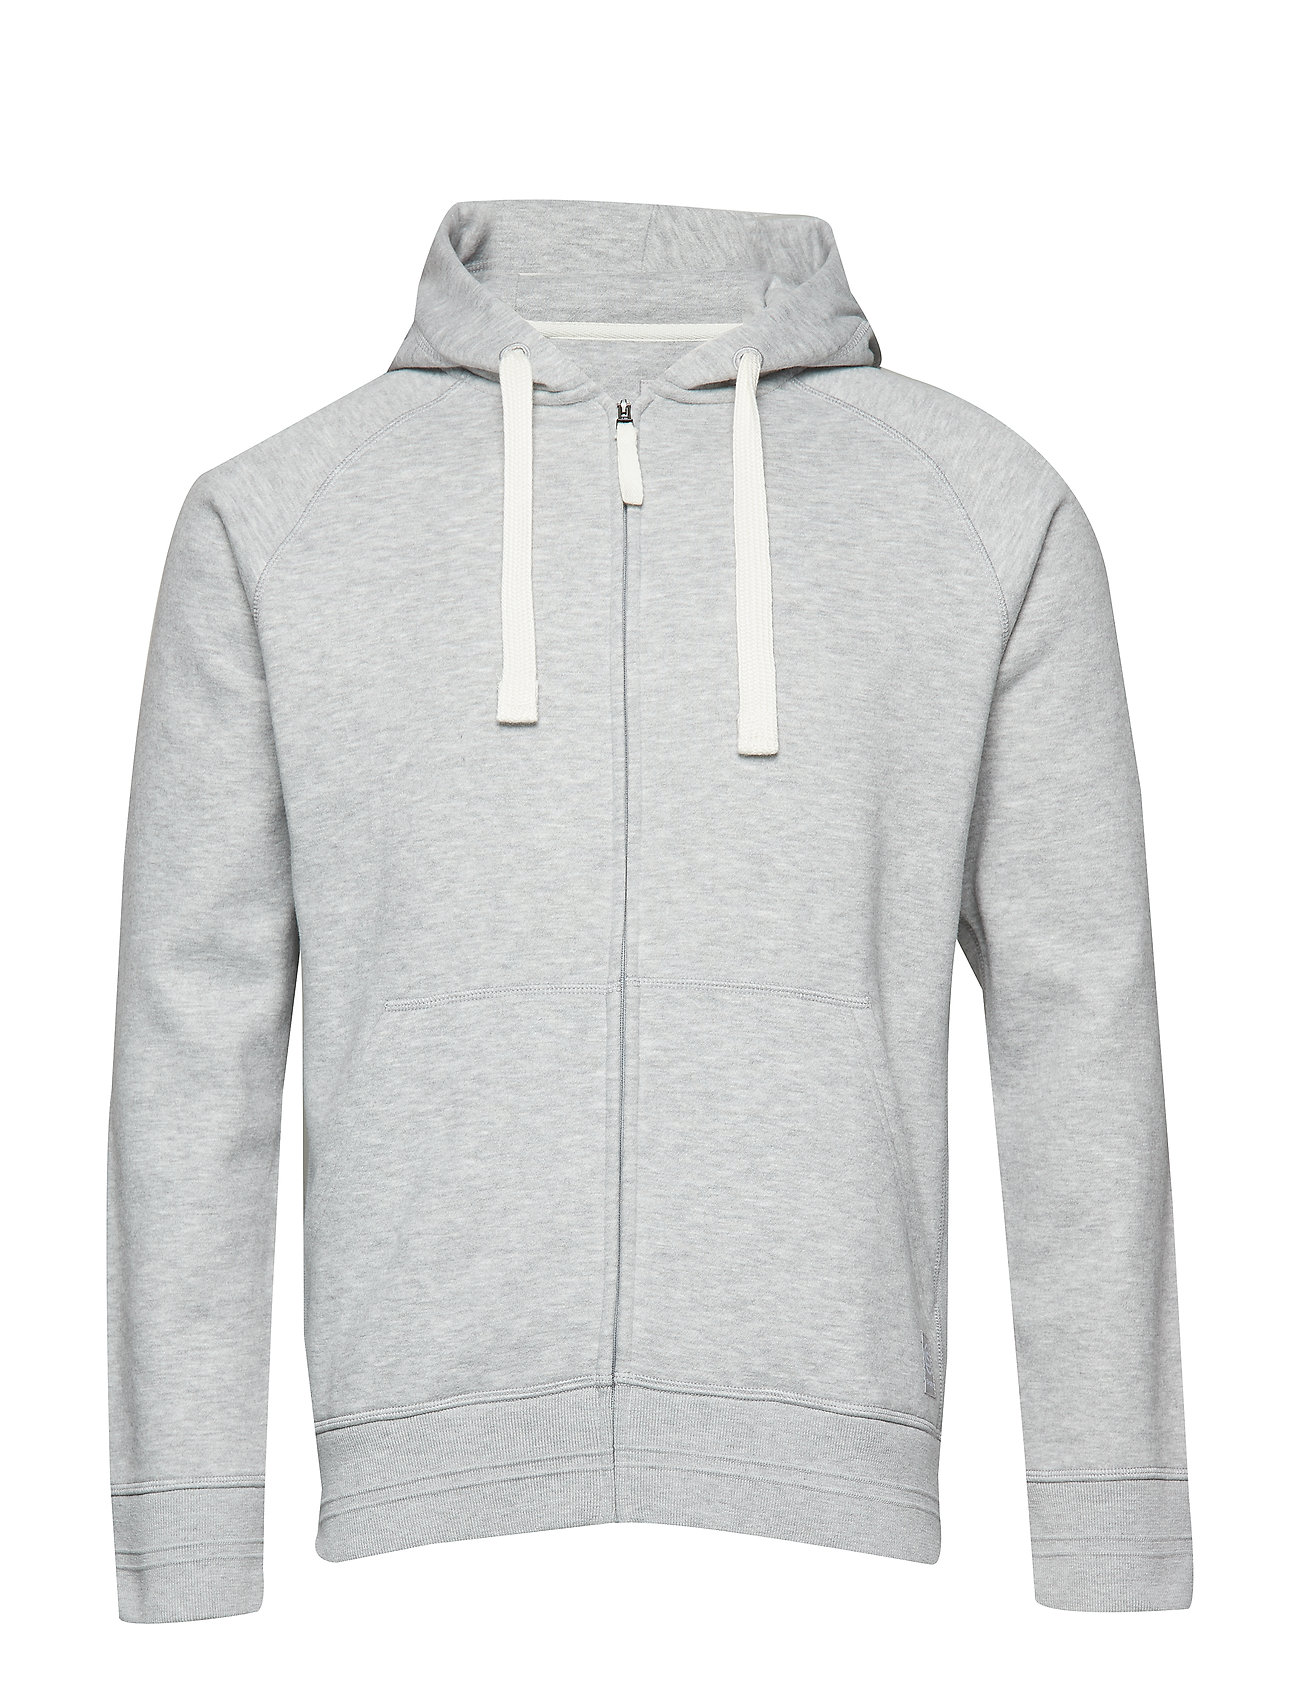 Skins Activewear Linear Tech Fleece Mens Hoodie - SILVER MARLE